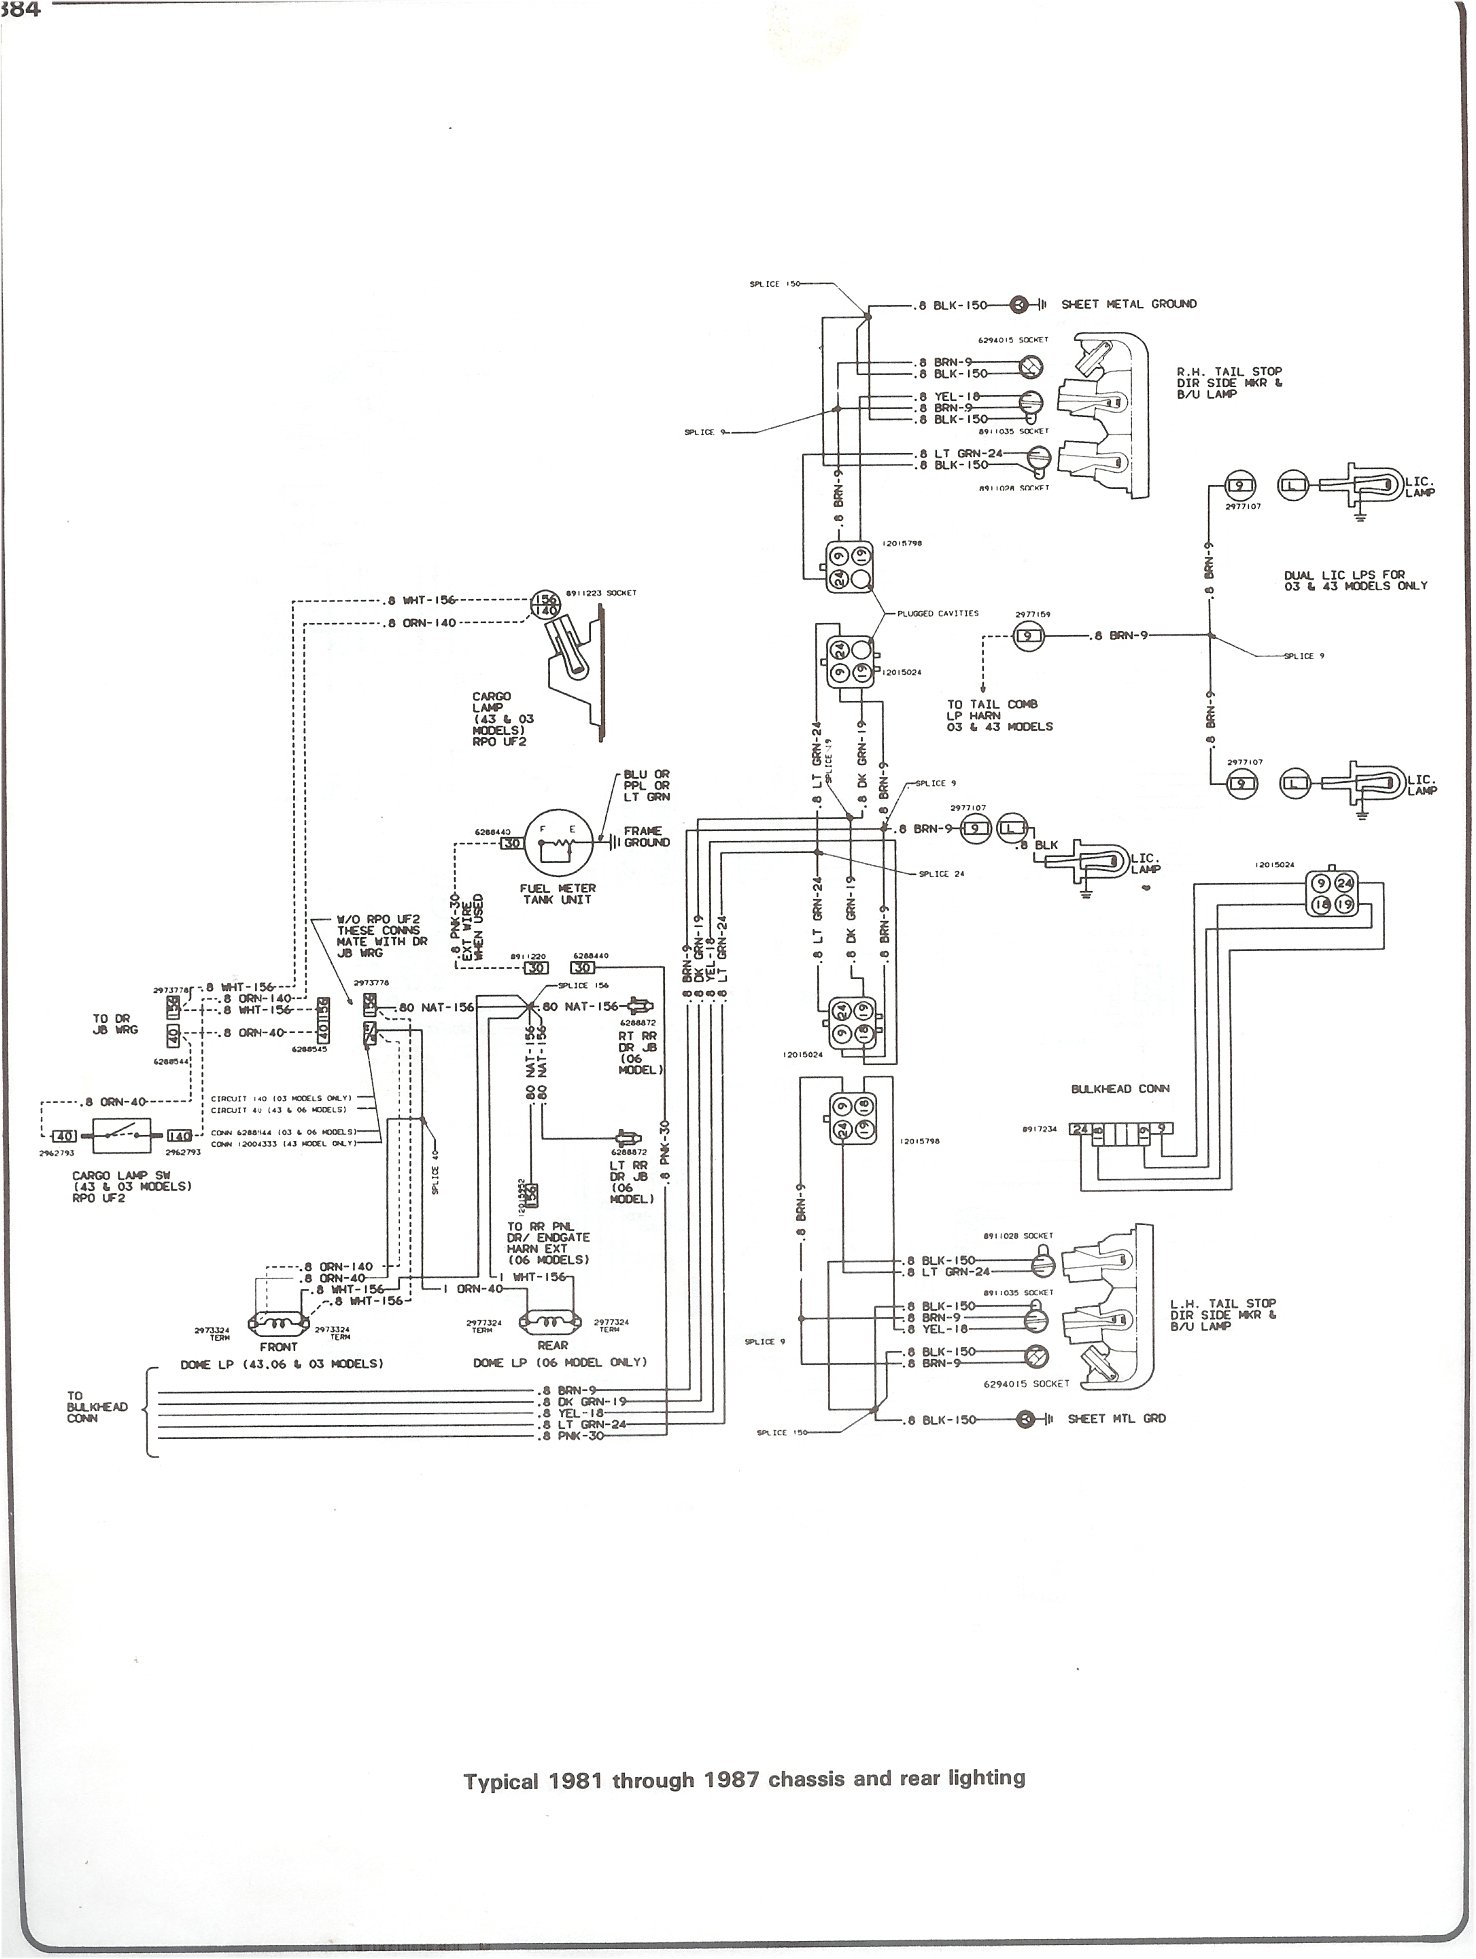 1976 chevy scottsdale wiring fuses trusted wiring diagrams rh kroud co 1985 chevy c10 engine diagram chevy c10 engine diagram